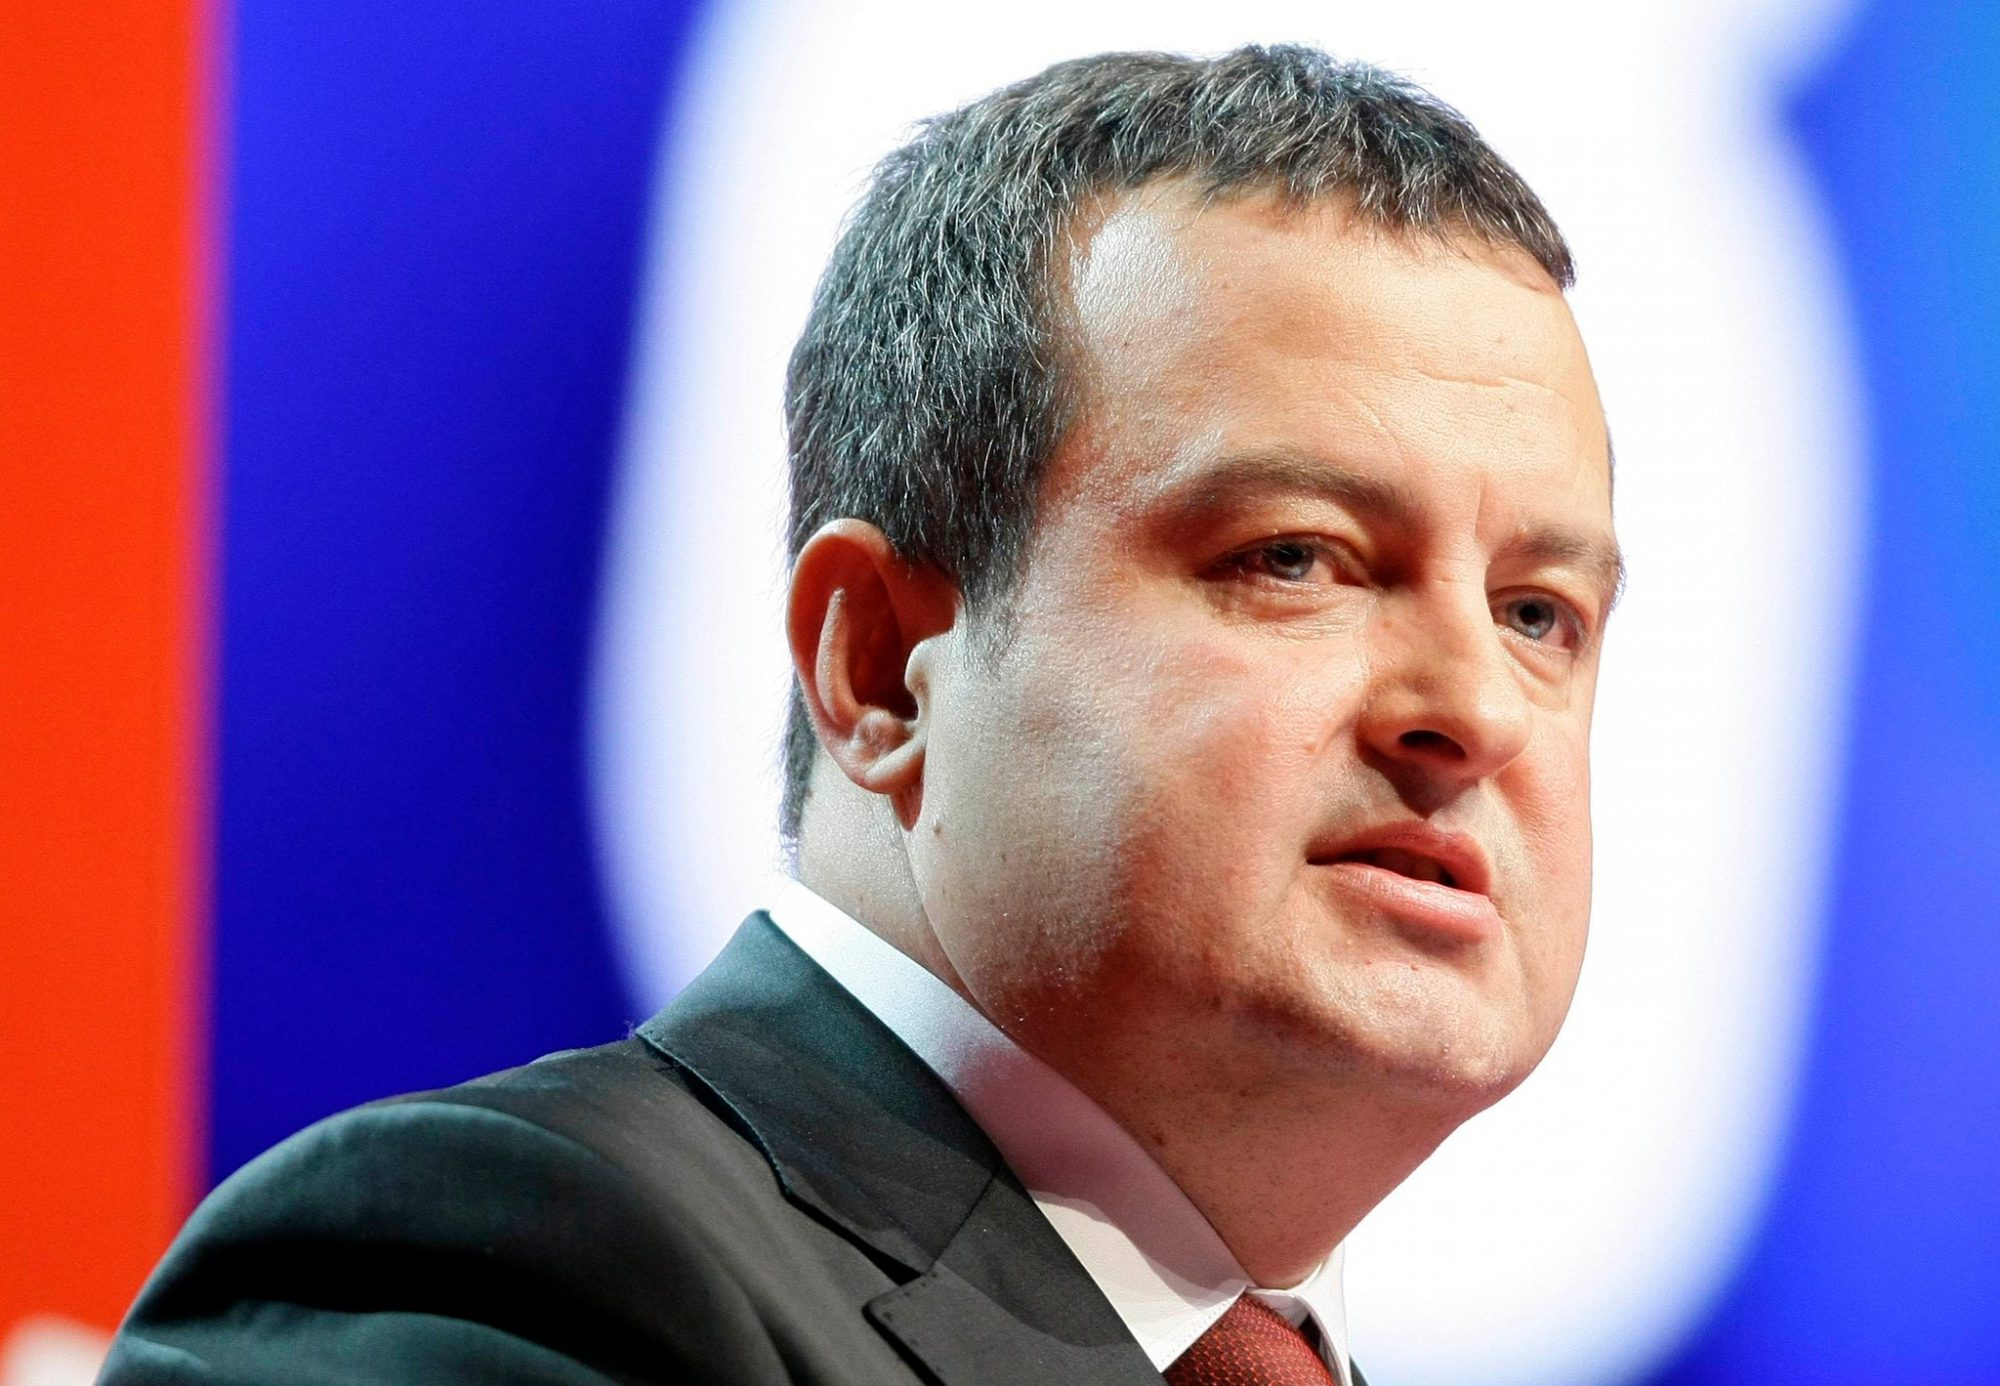 Dacic appears concerned over extent of right-wing influence on Croat-Serb ties